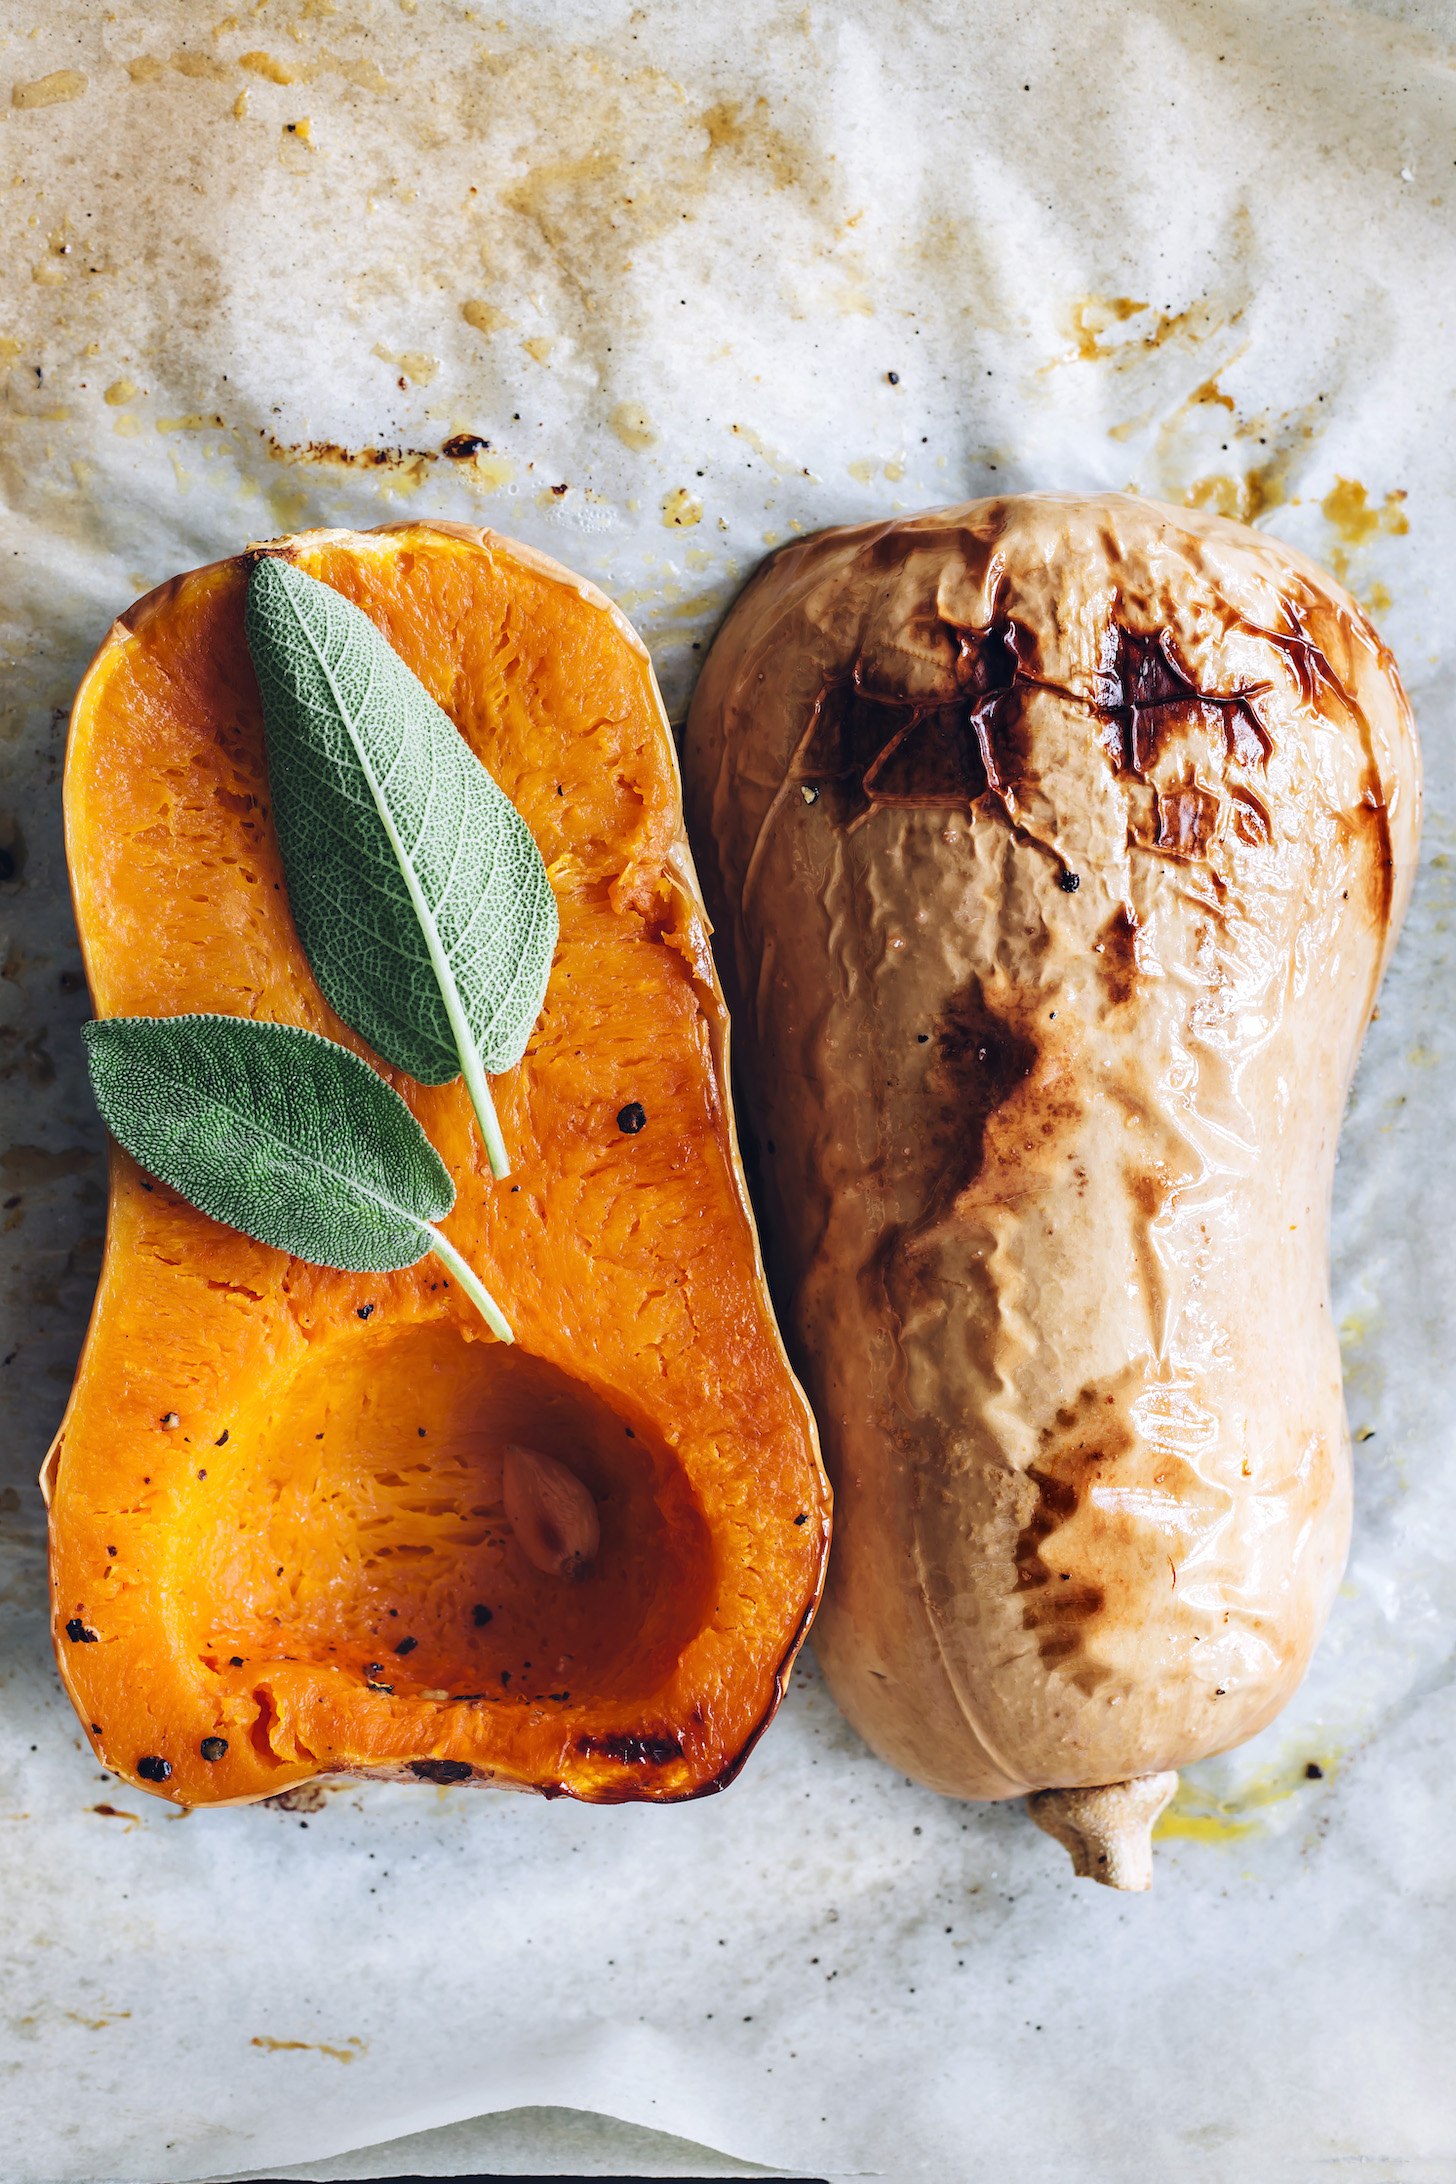 Roasted butternut squash, garlic, and sage